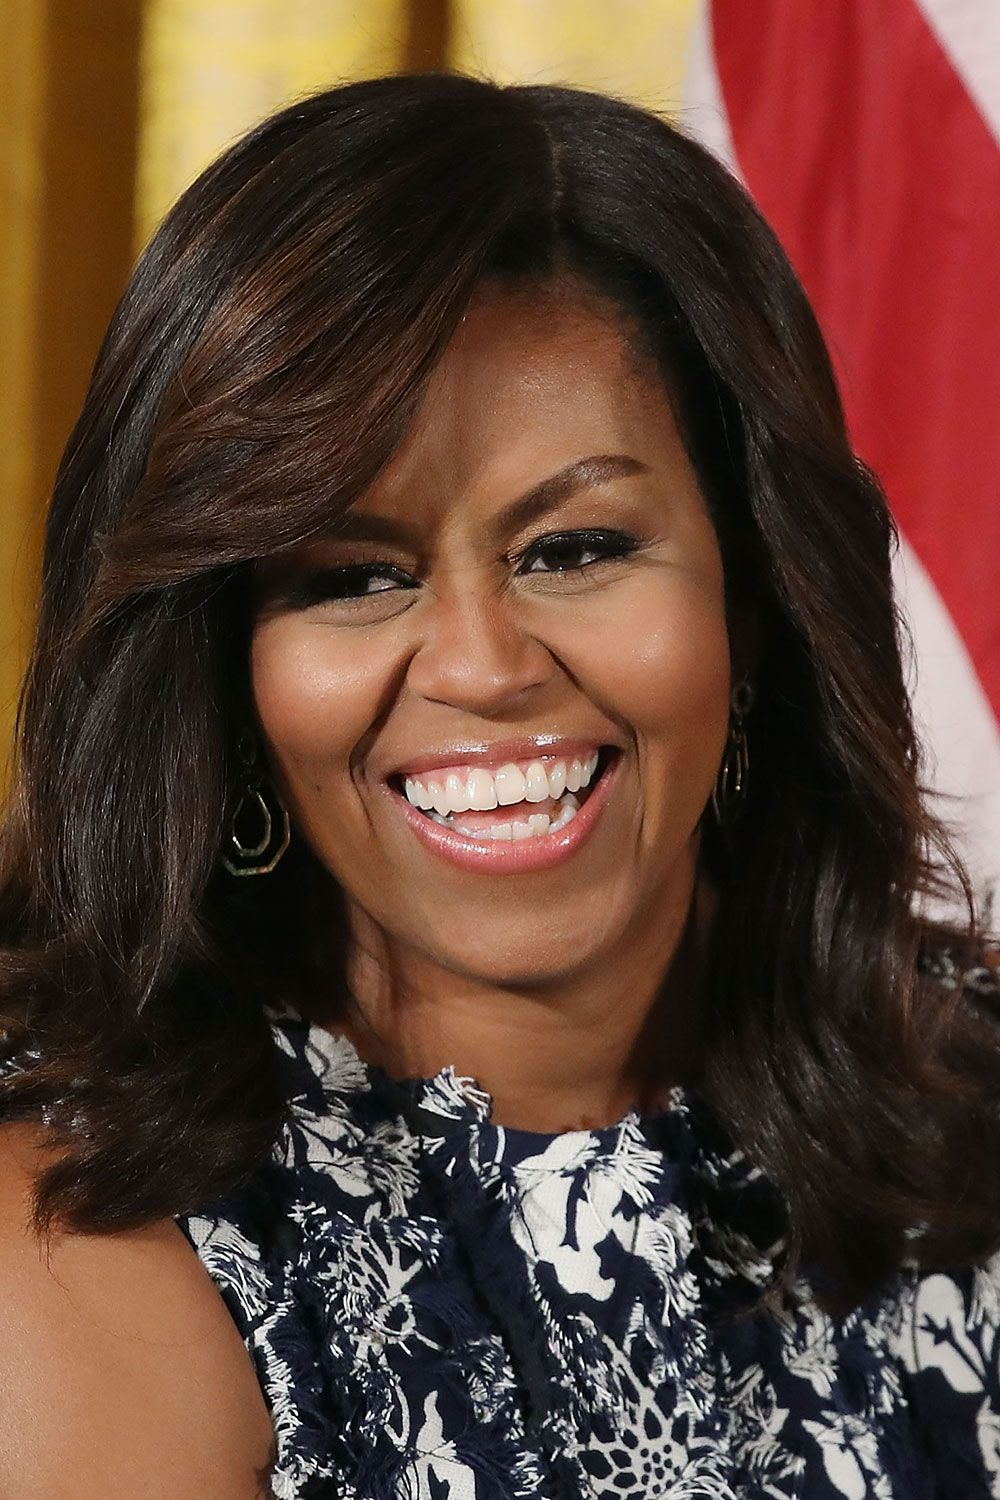 Michelle Obama's make-up artist on the 5 products she uses to achieve that glow